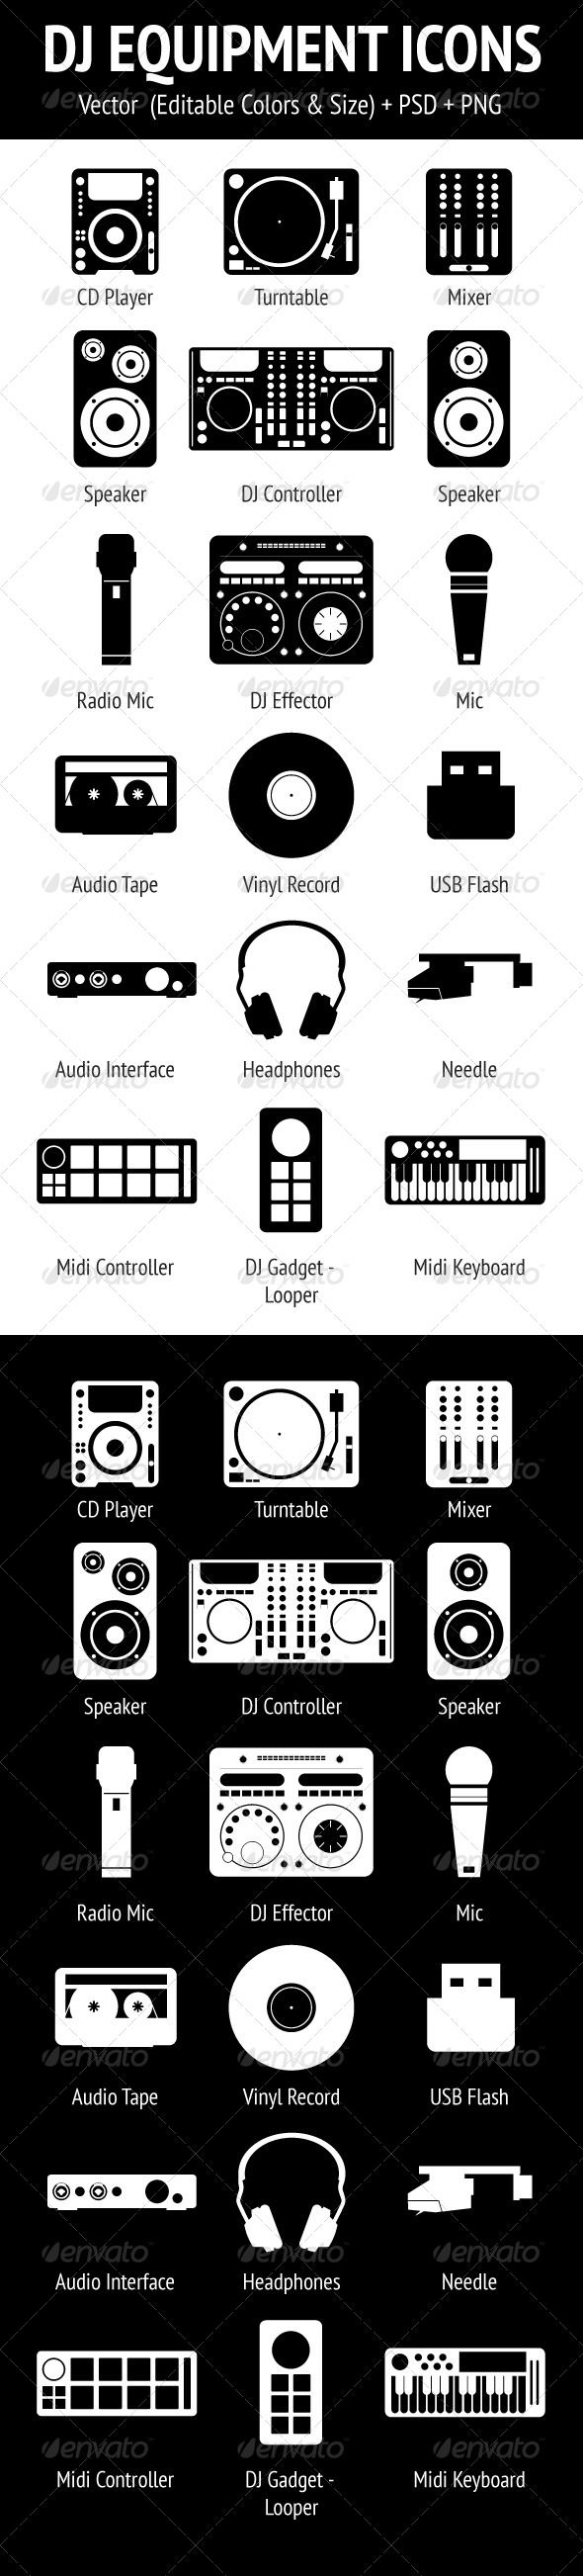 DJ Equipment Icons Set #GraphicRiver A set of 18 dj equipment & tools icons. It's vector and changeable.This pack includes: 2-way Speaker 3-way Speaker Audio Interface Audio Tape CD Player Controller Effector Gadget Headphones Mic Midi Controller Midi Keyboard Mixer Needle Radio Mic Turntable USB Flash Vinyl Record Files: EPS (10) AI (CS3) PSD (CS3) Transparent PNG (512×512) Don't forget rate this item if you like! Follow me on GraphicRiver to get my latest designs. Thank you! You might also…